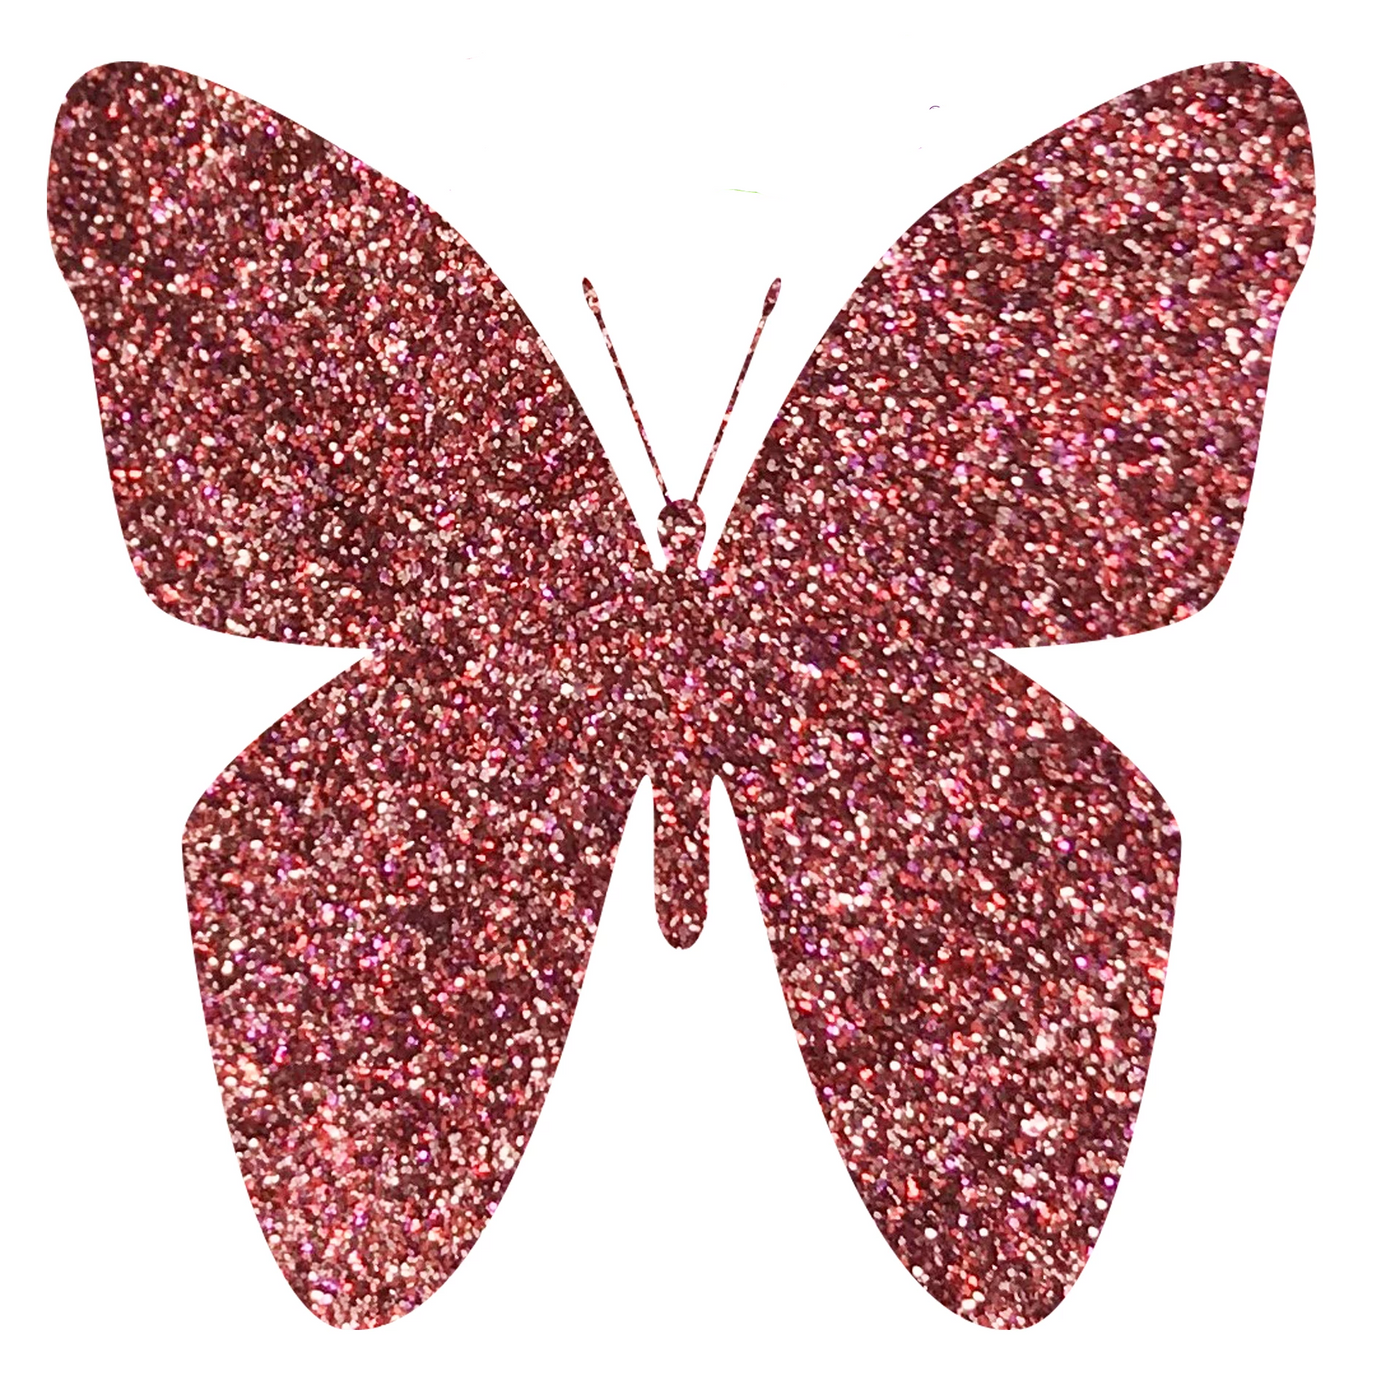 Ultrafine Glitter Dazzling Rose, G1085